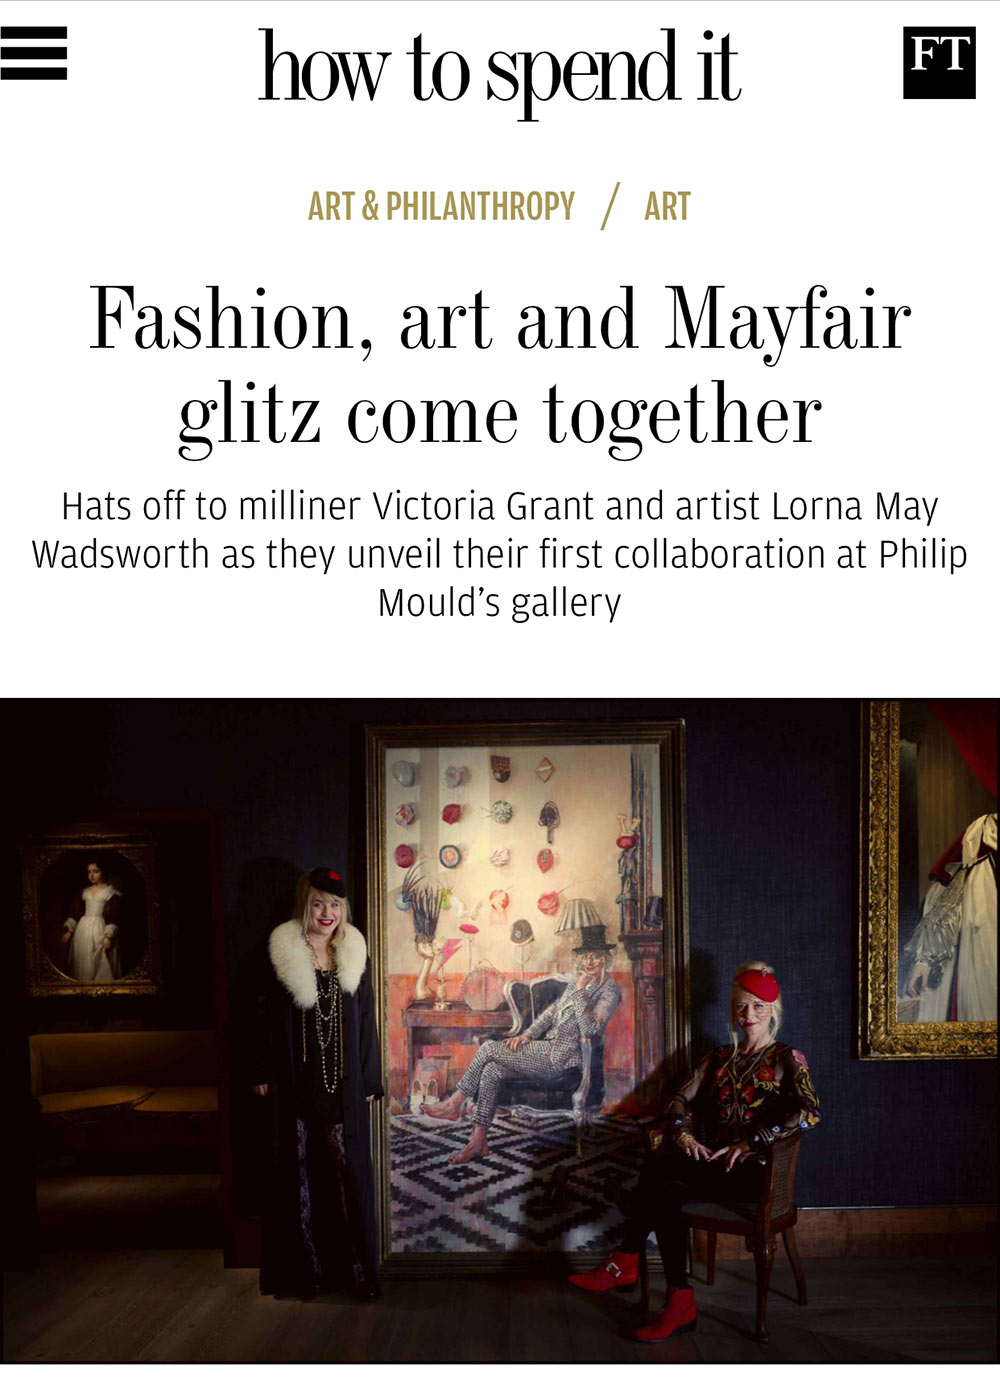 - Read about the exhibition in the Financial Times' How To Spend It